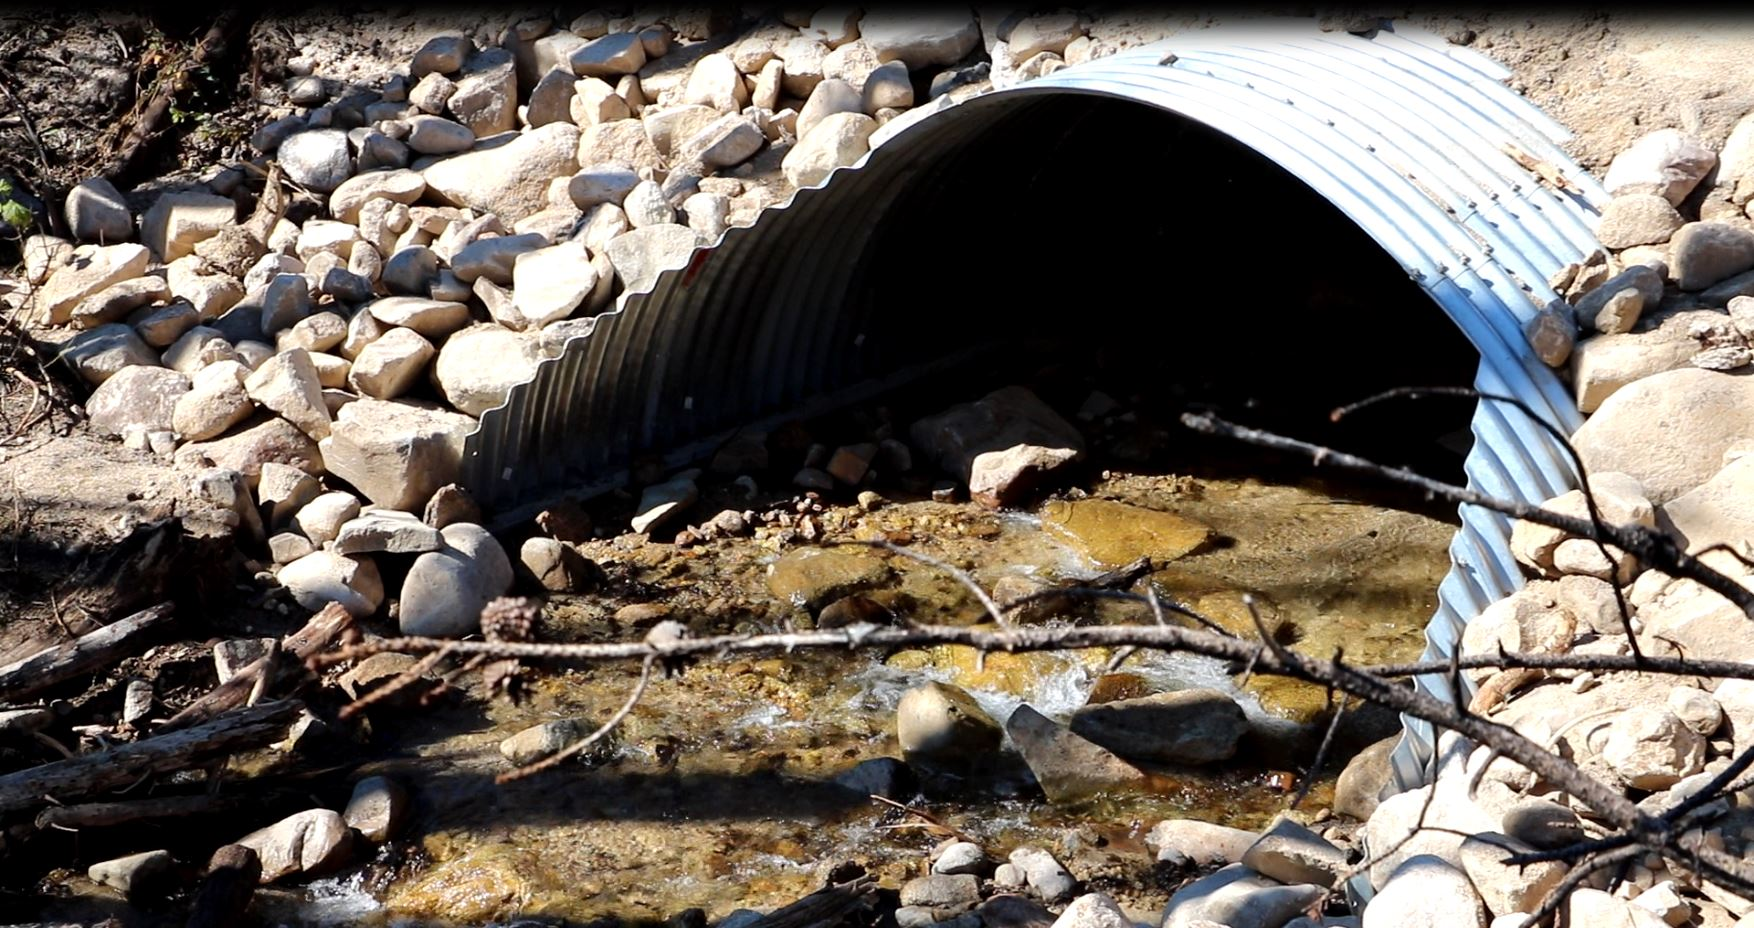 A photo of a new culvert within a wildfire area